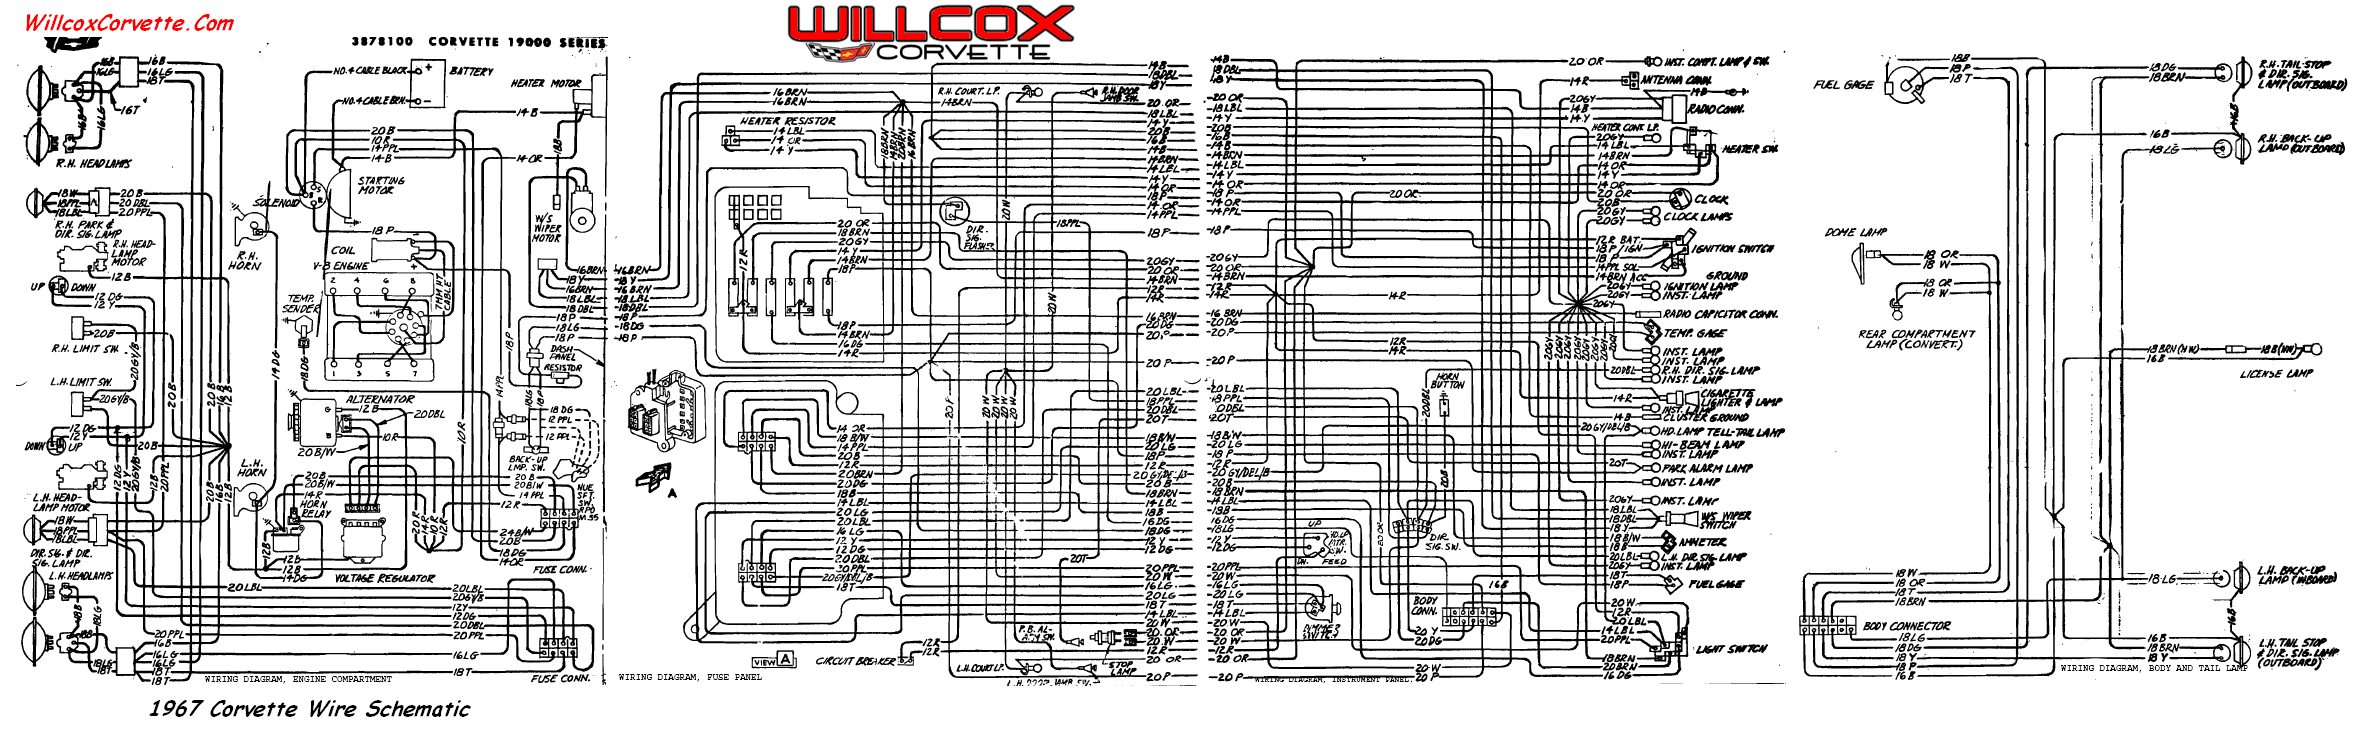 67 wire schematic for tracing wires 1967 corvette wiring diagram (tracer schematic) willcox corvette 1980 corvette wiring schematics at readyjetset.co